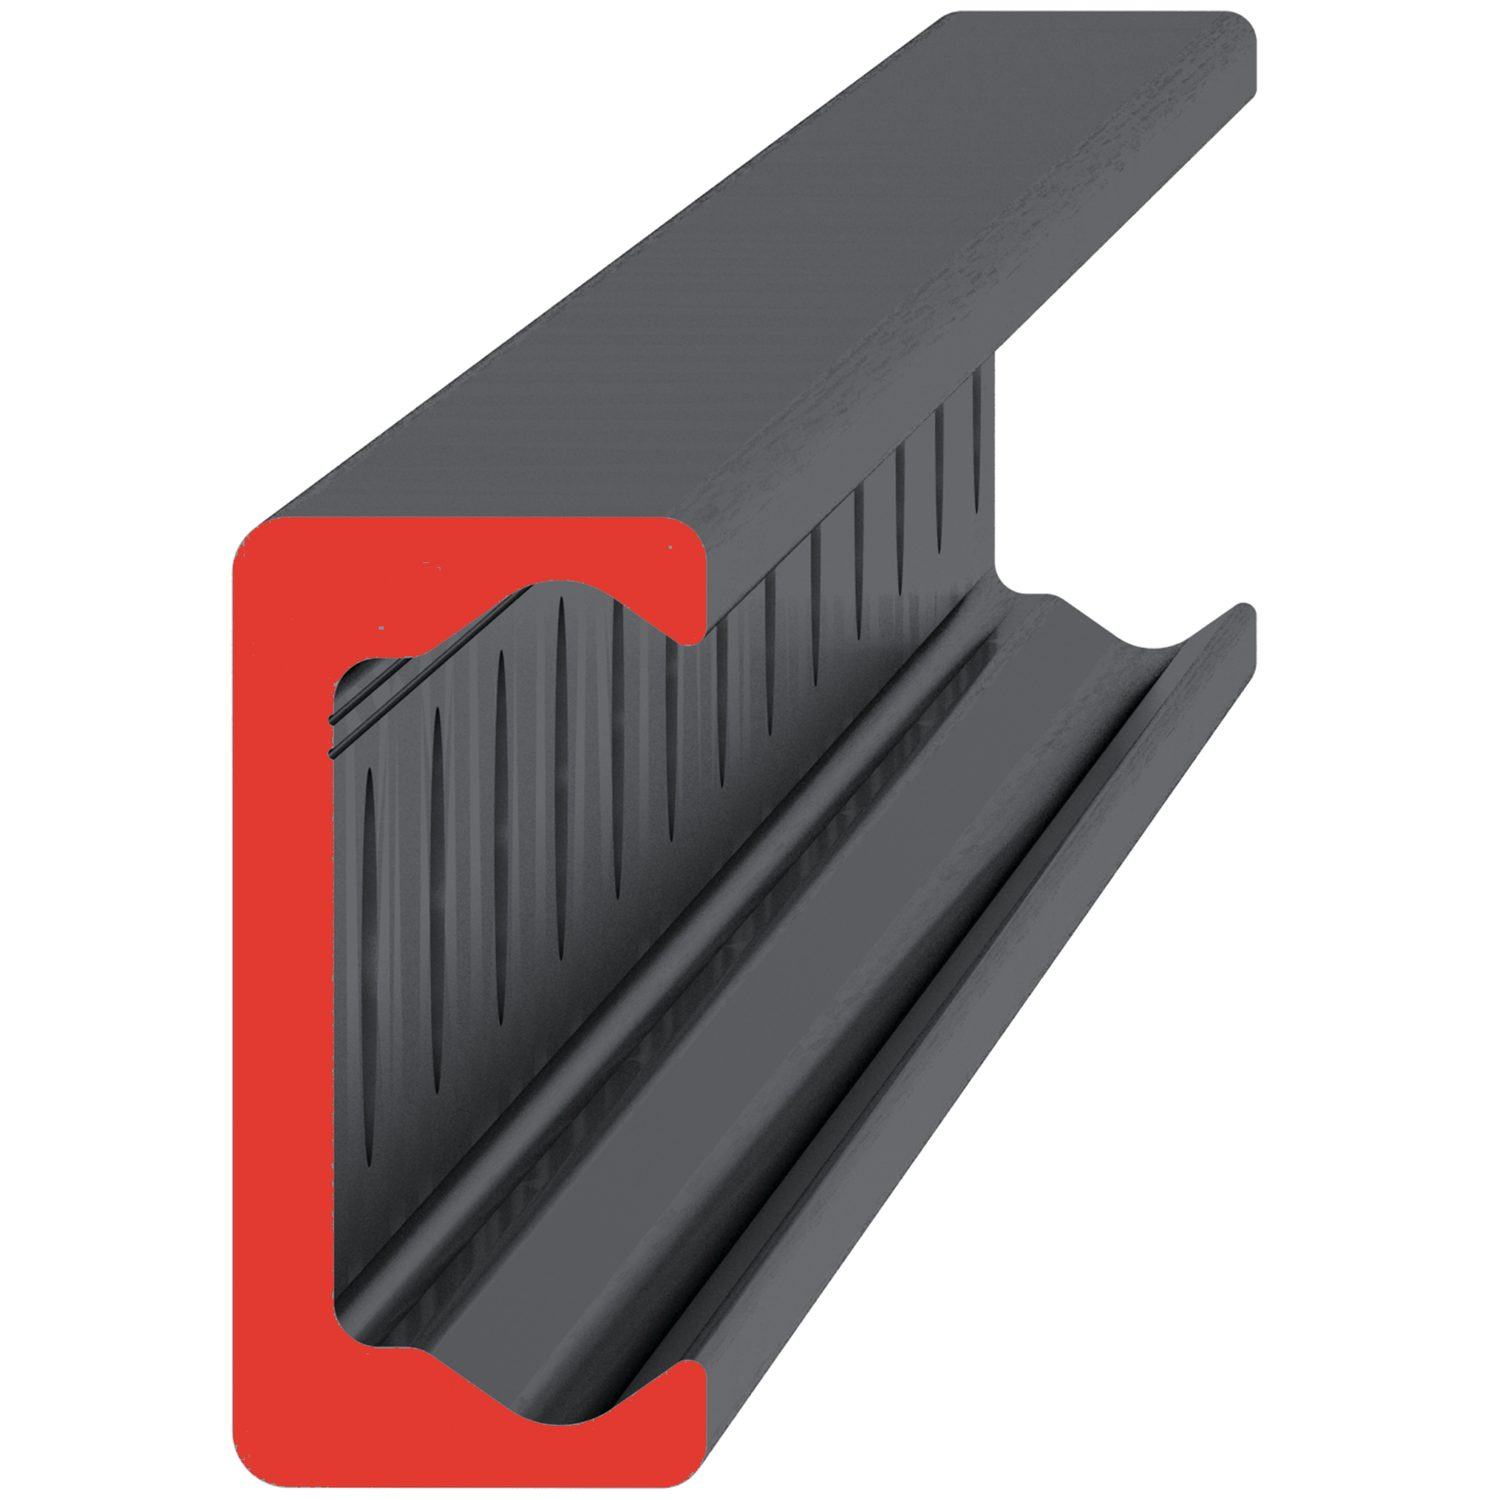 Product L1935.TL, Medium Duty T Rail countersunk holes /